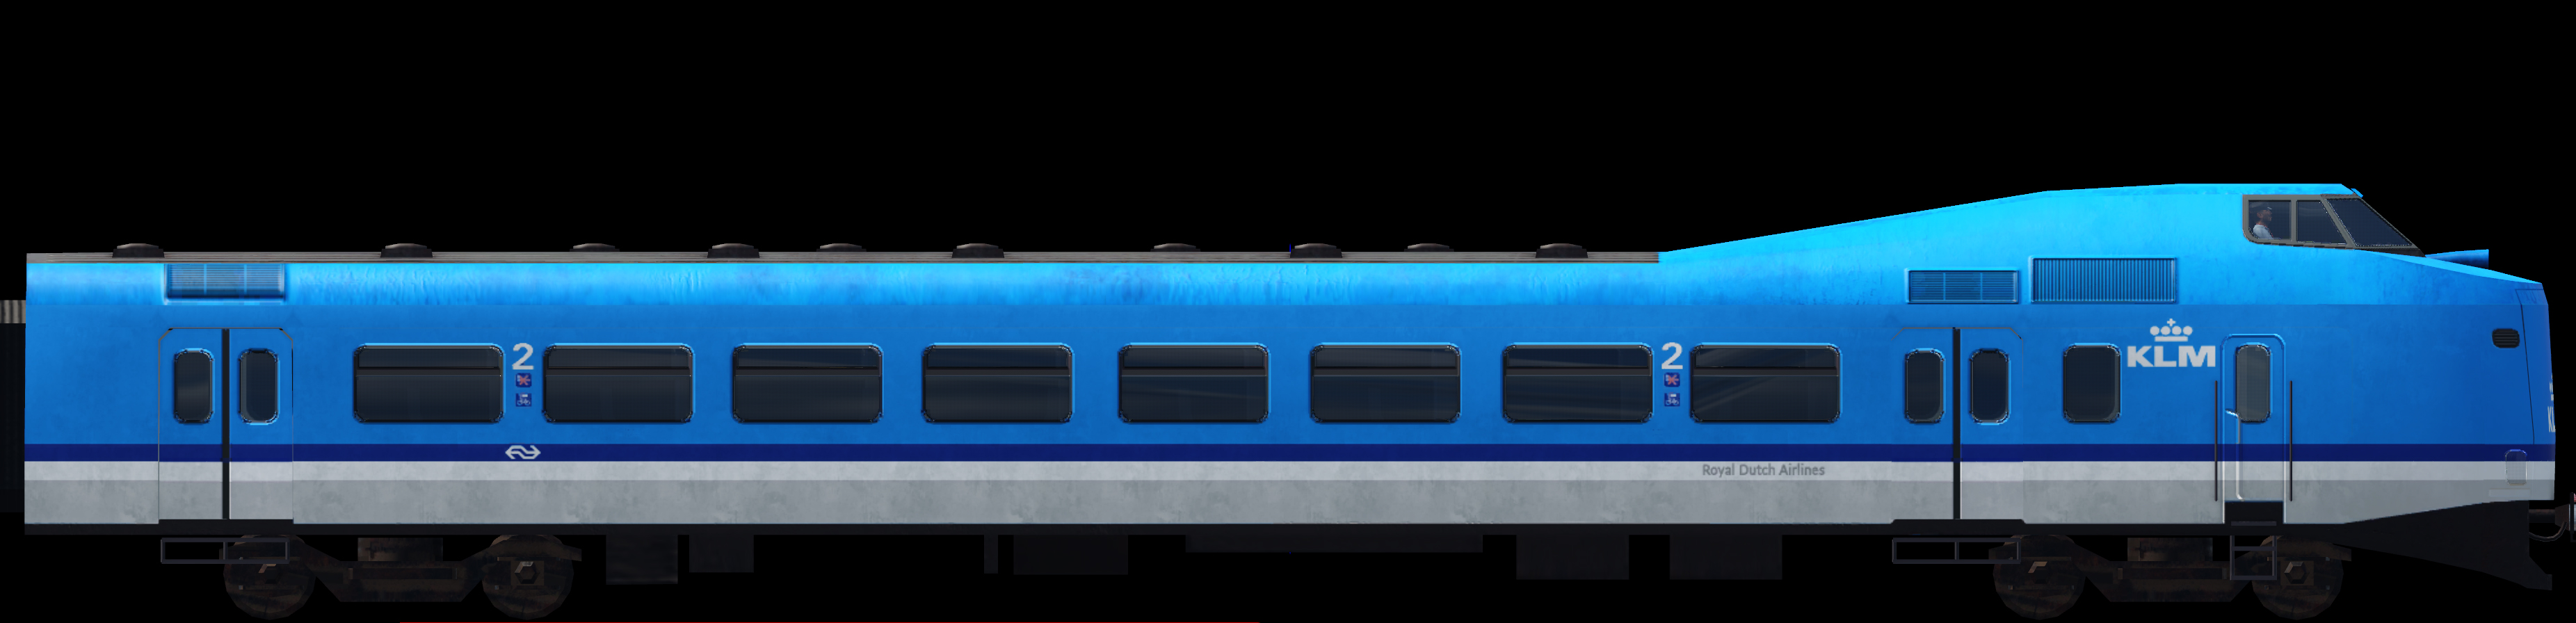 Transport Fever 2 - NS ICM Koploper: KLM